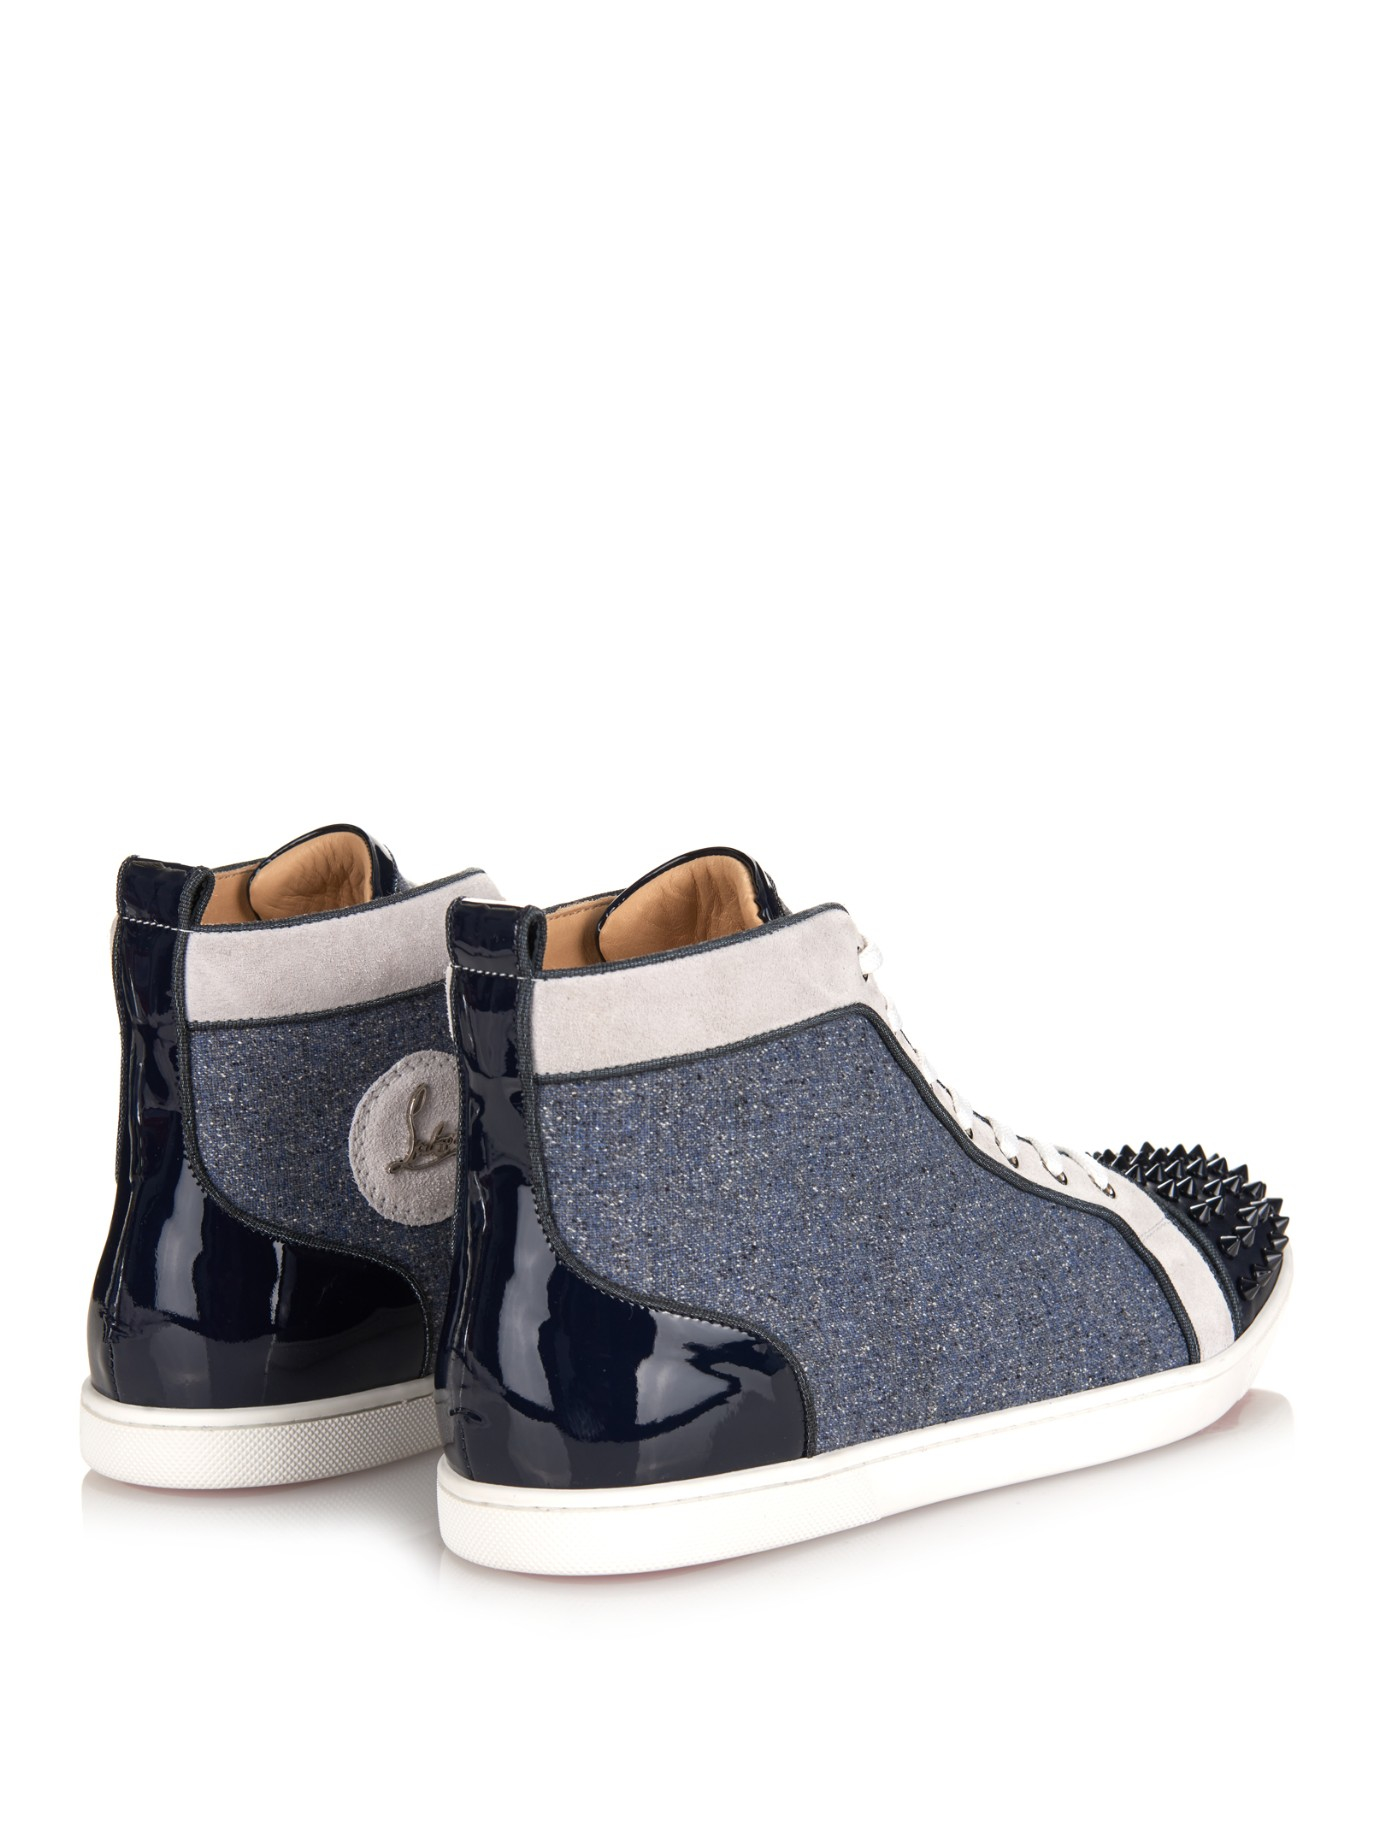 louis vuitton men sneakers - Christian louboutin Bip Bip Orlato Spiked High-Top Sneakers in ...